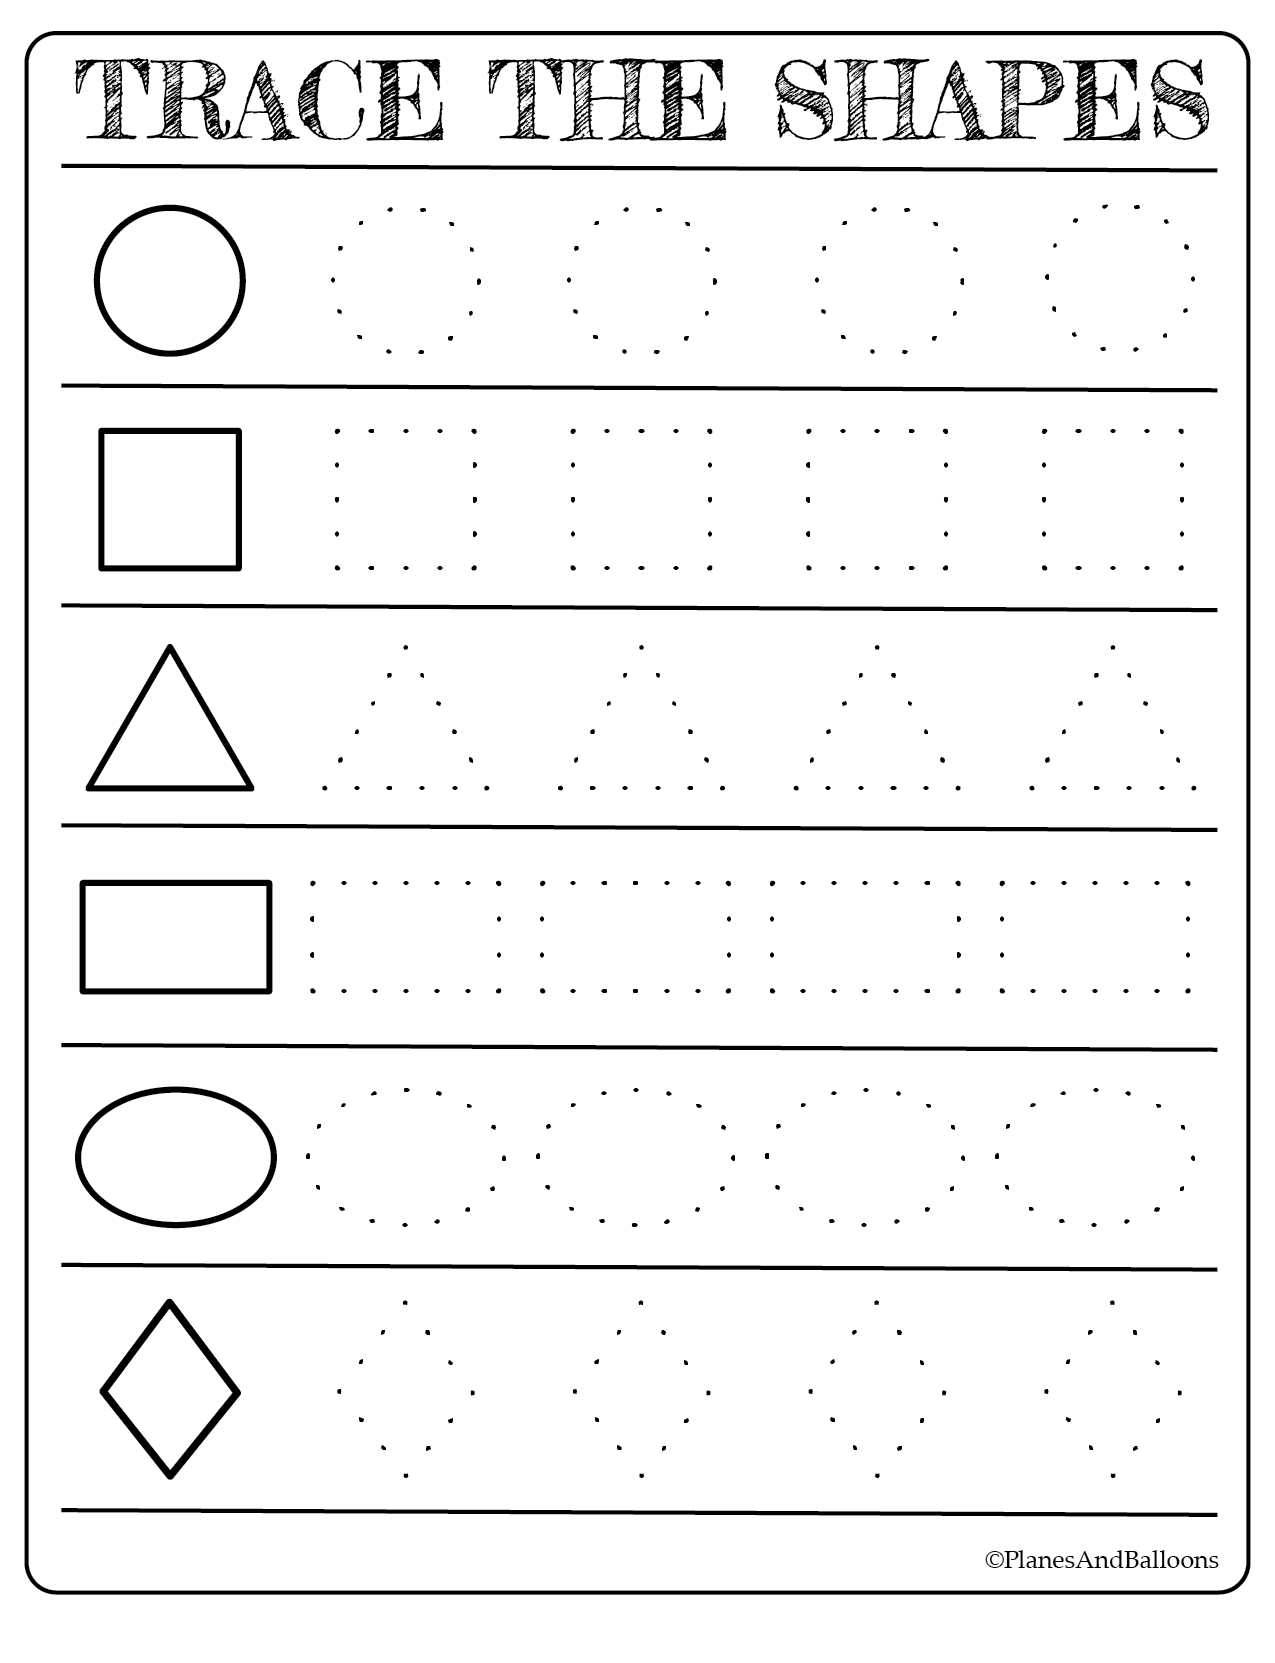 Free Printable Shapes Worksheets For Toddlers And Preschoolers | Printable Toddler Worksheets